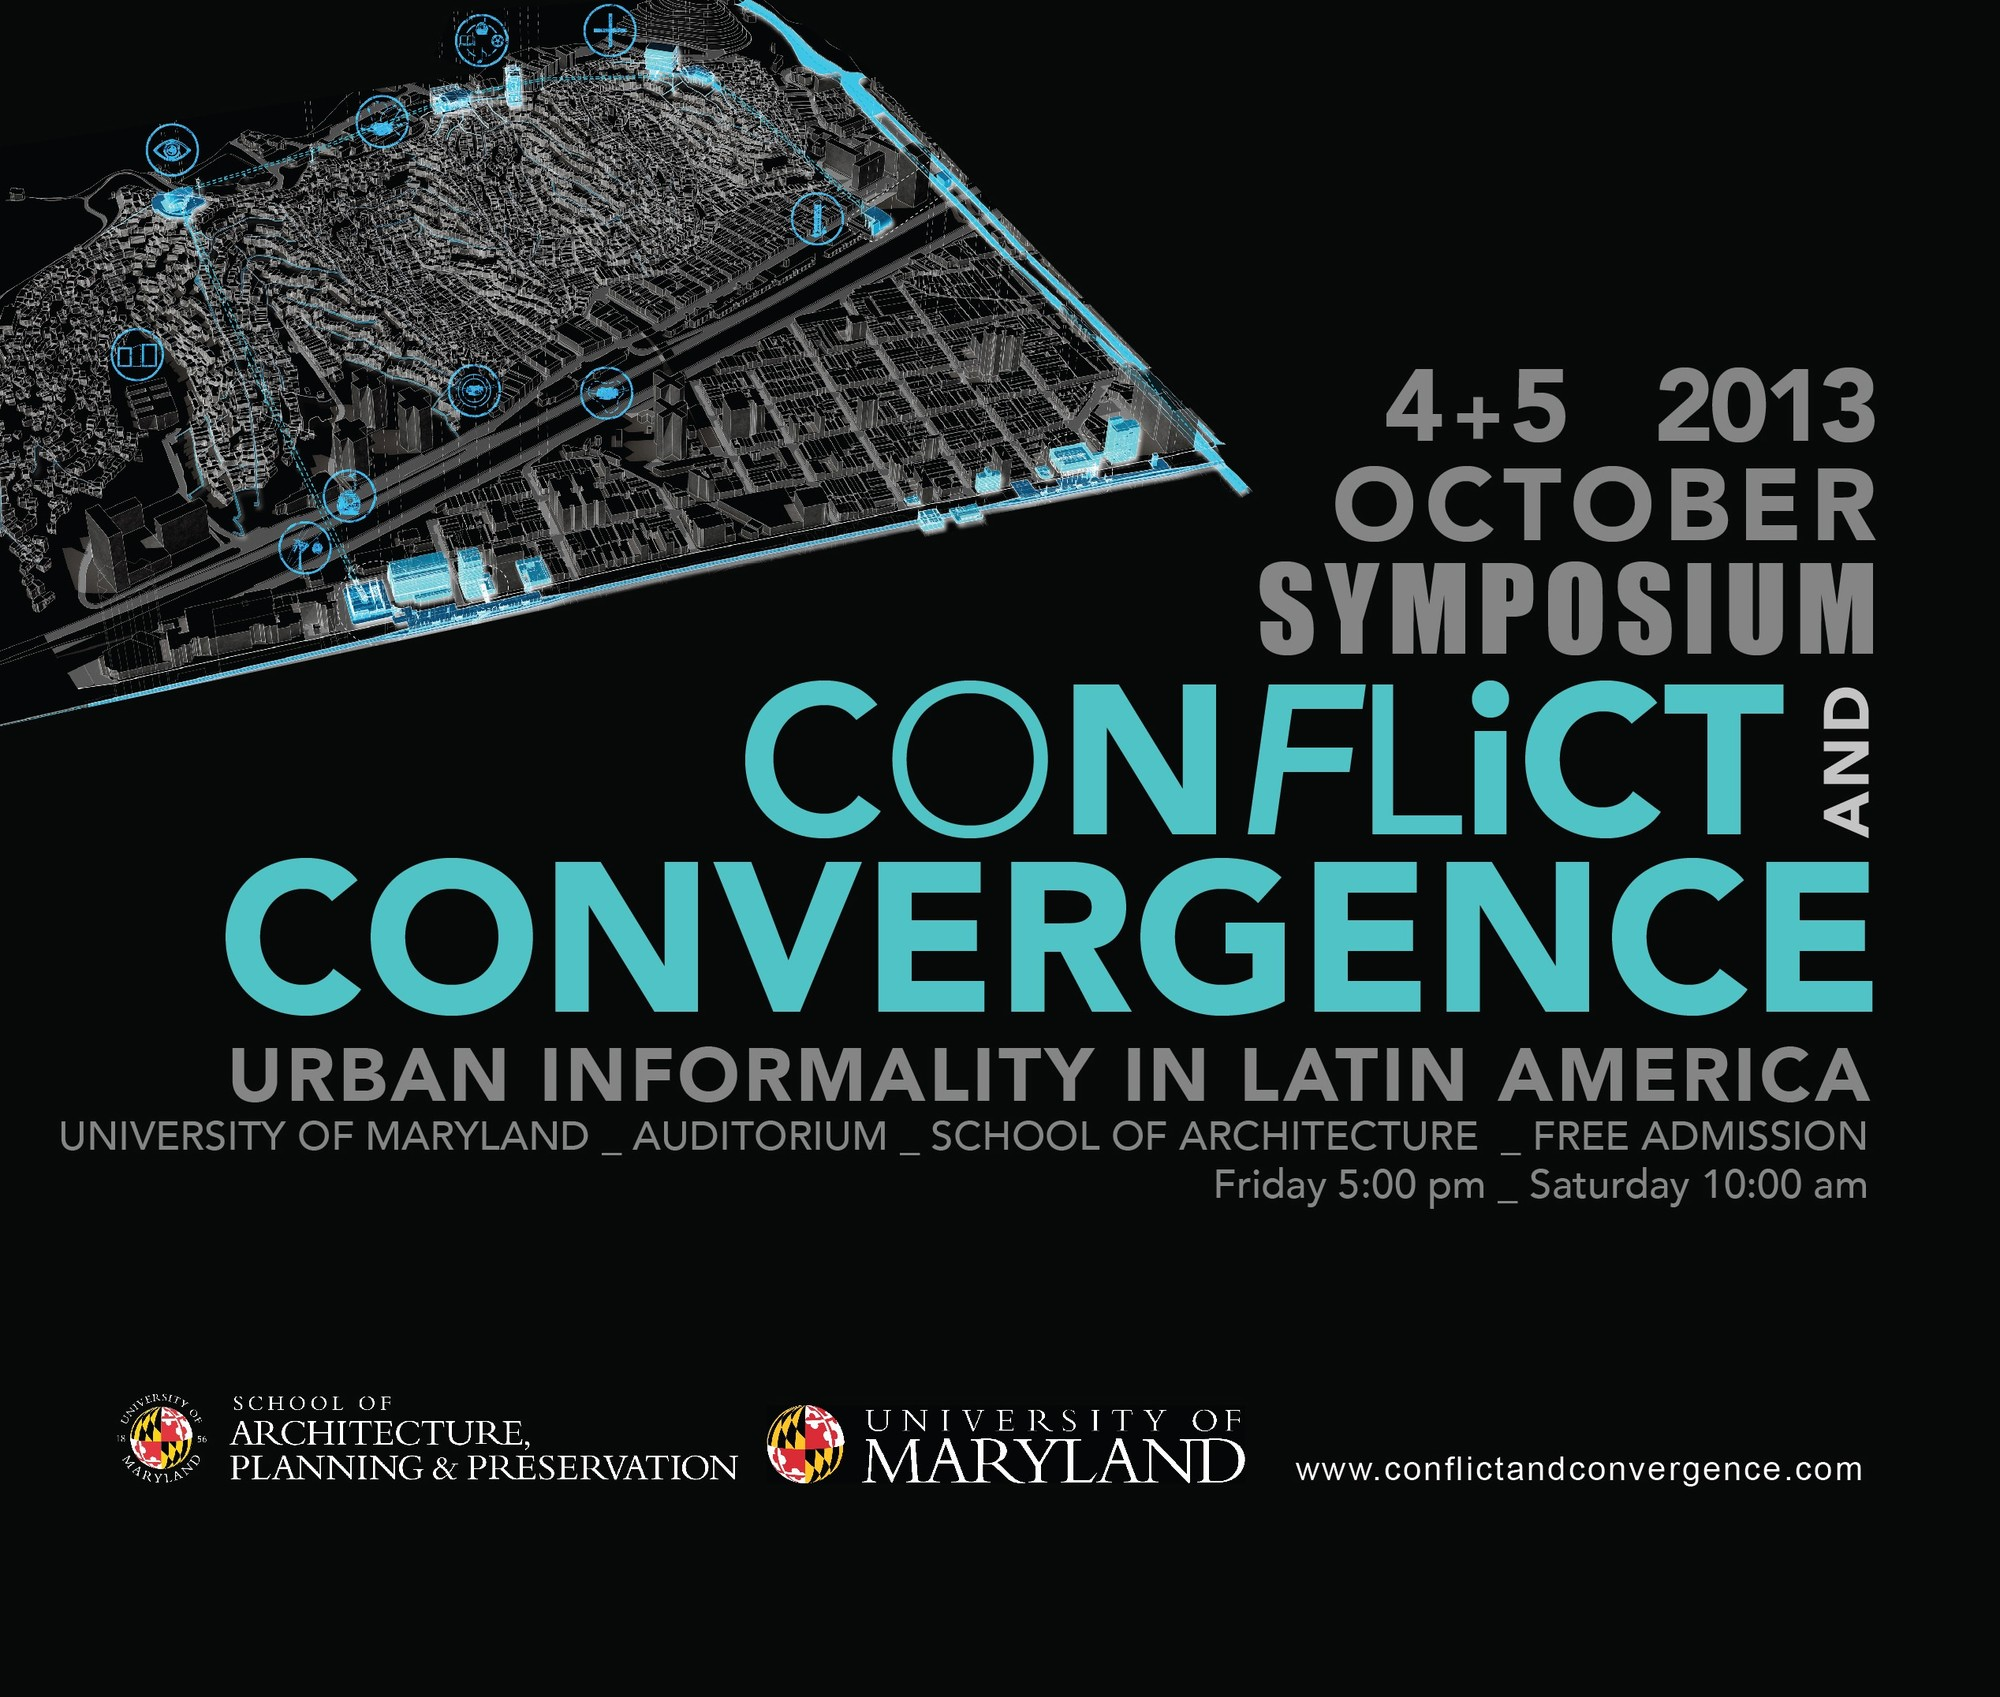 Simposio 'Conflicto y Convergencia: Informalidad Urbana en América Latina' , Cortesía de University of Maryland School of Architecture, Planning and Preservation